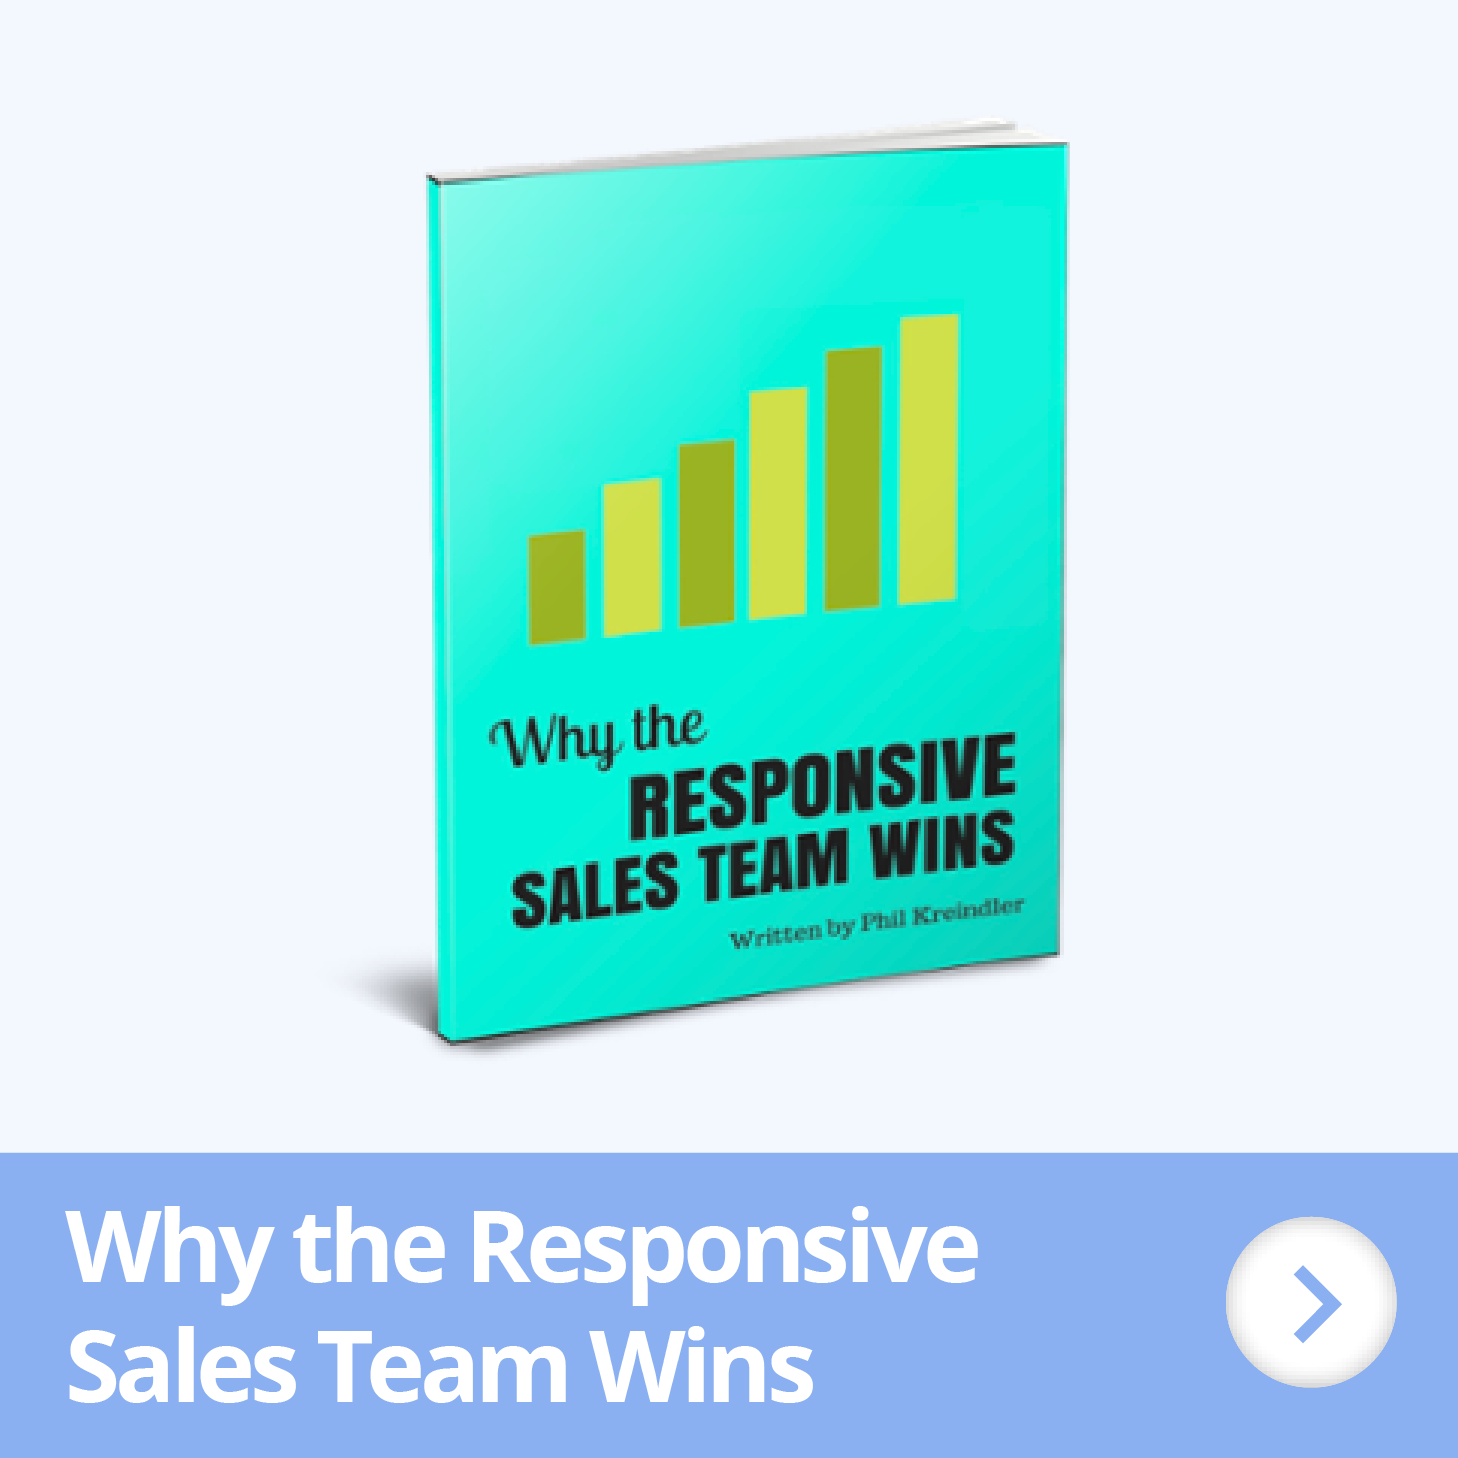 Why The Responsive Sales Team Wins